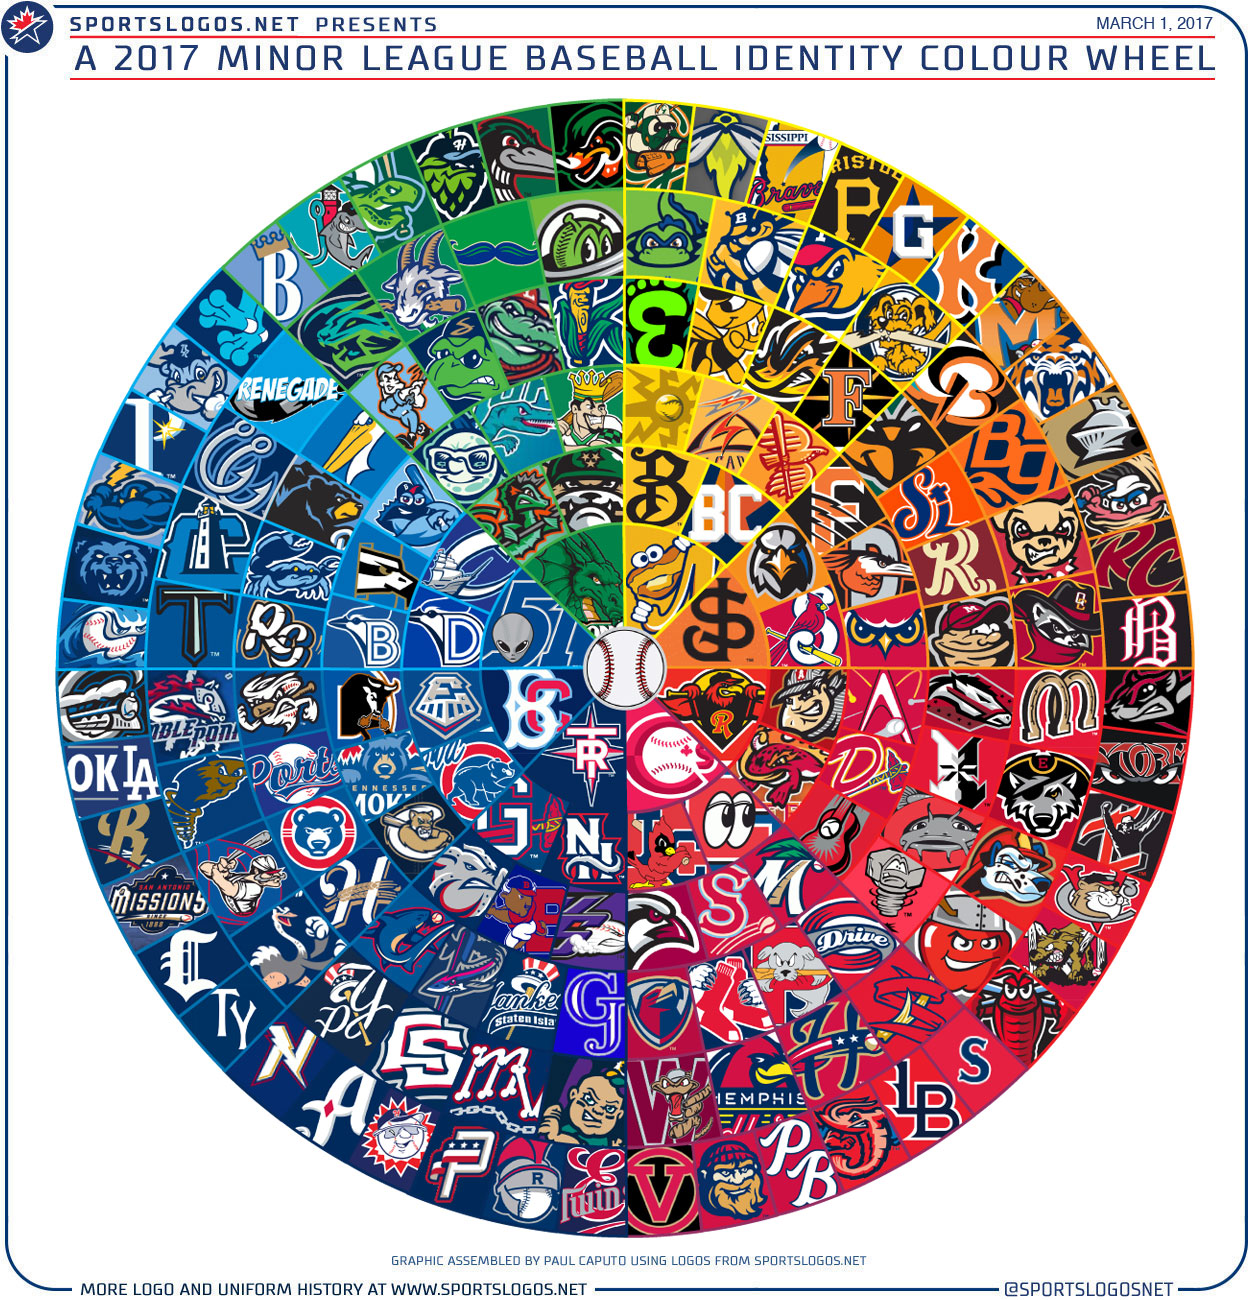 Minor league baseball clipart royalty free The 2017 Minor League Baseball Colour Wheel | Chris Creamer's ... clipart royalty free